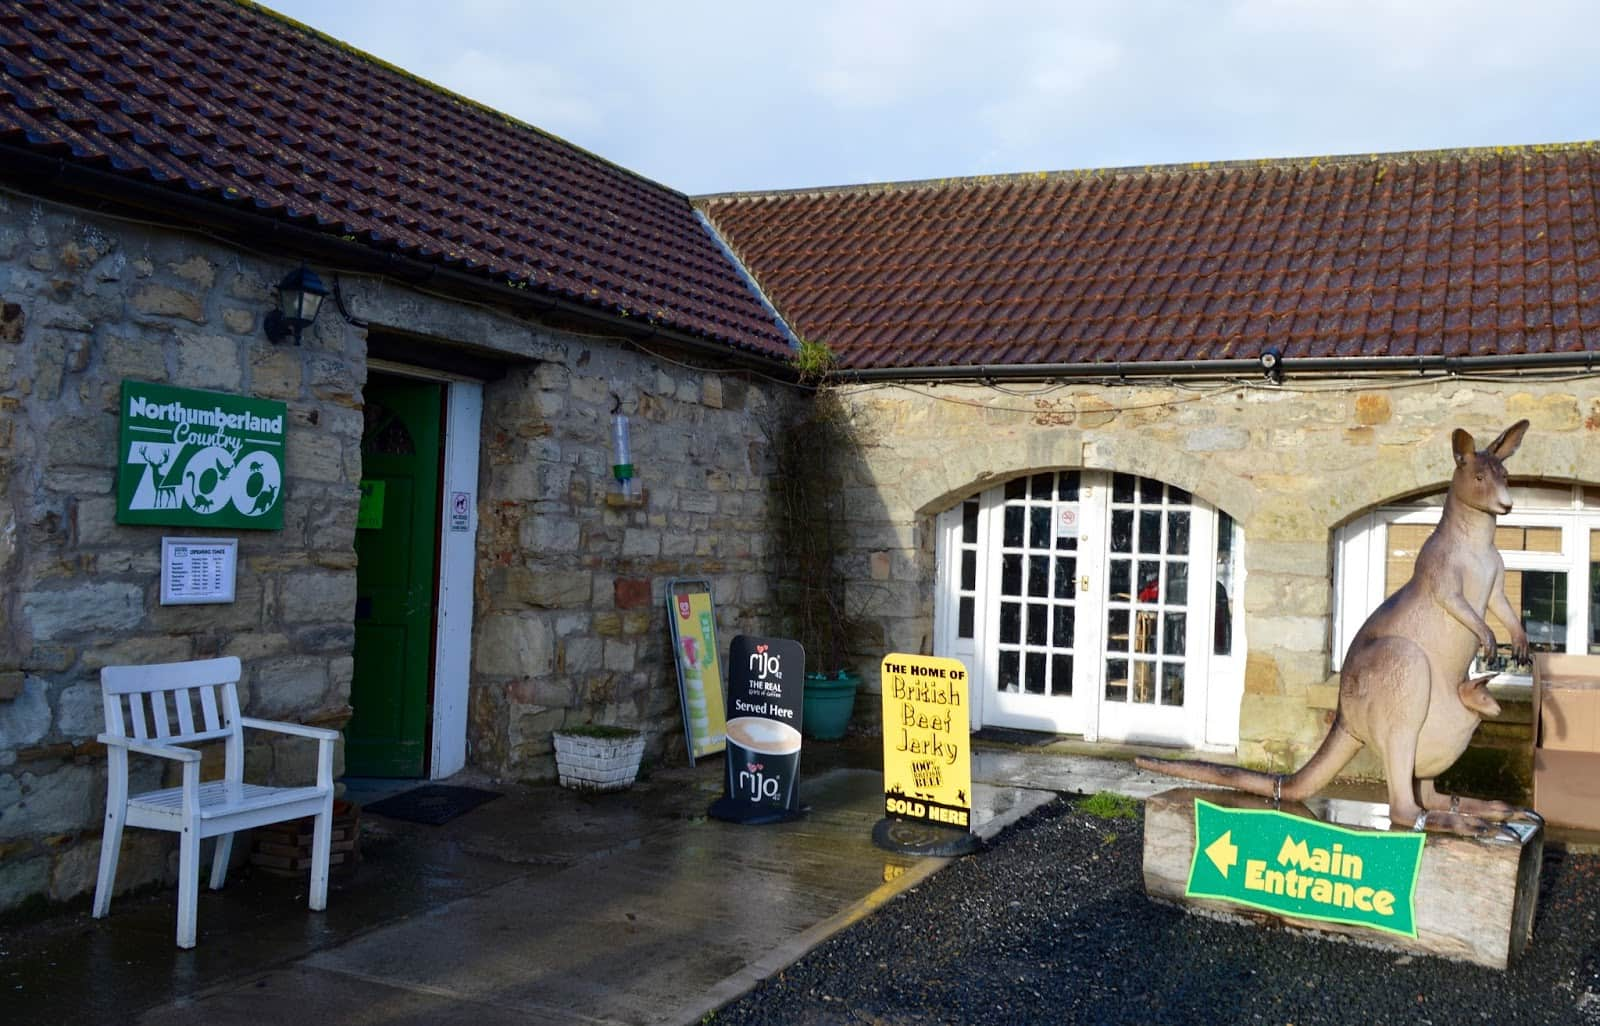 The entrance of Northumberland Country Zoo.